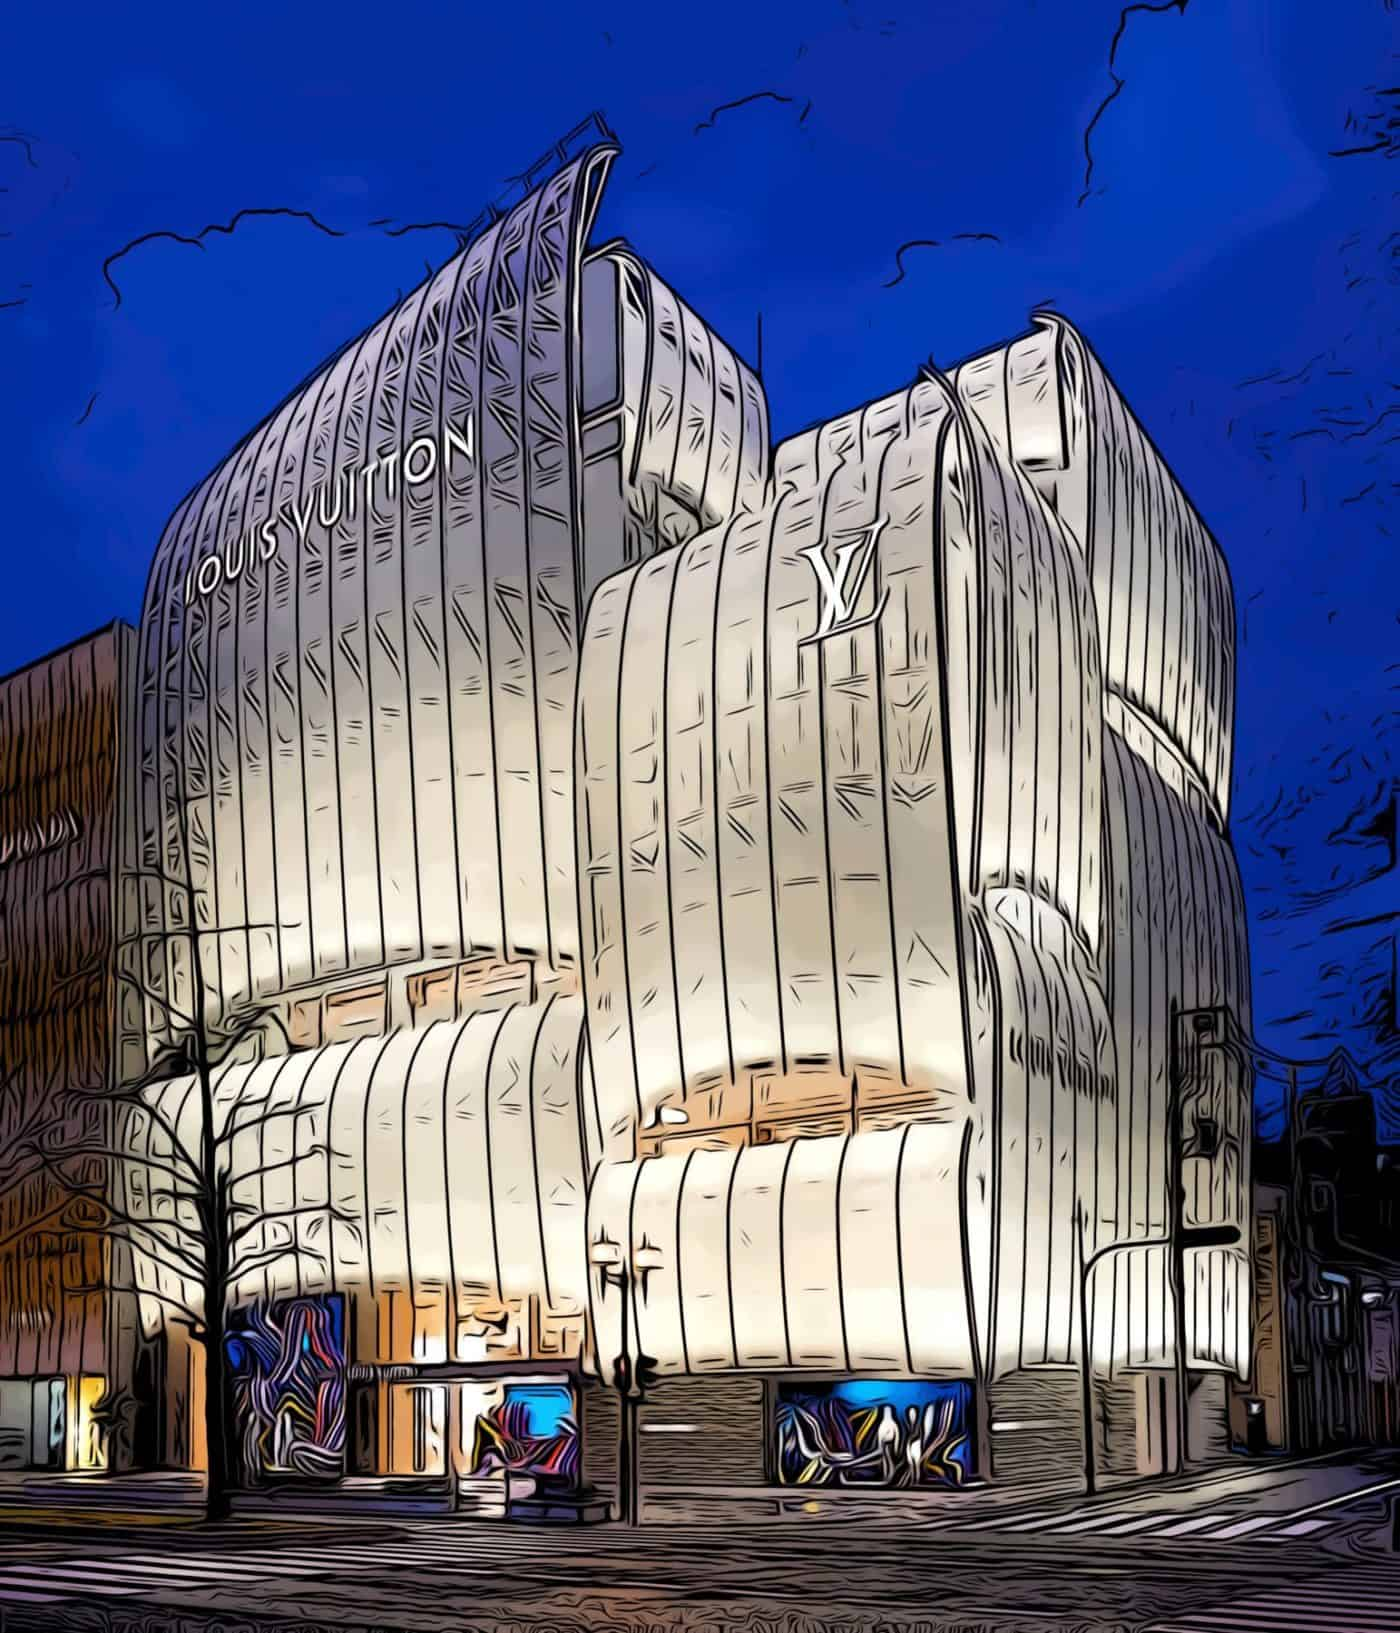 Osaka luis vuitton flagship store designed by jun aoki architects